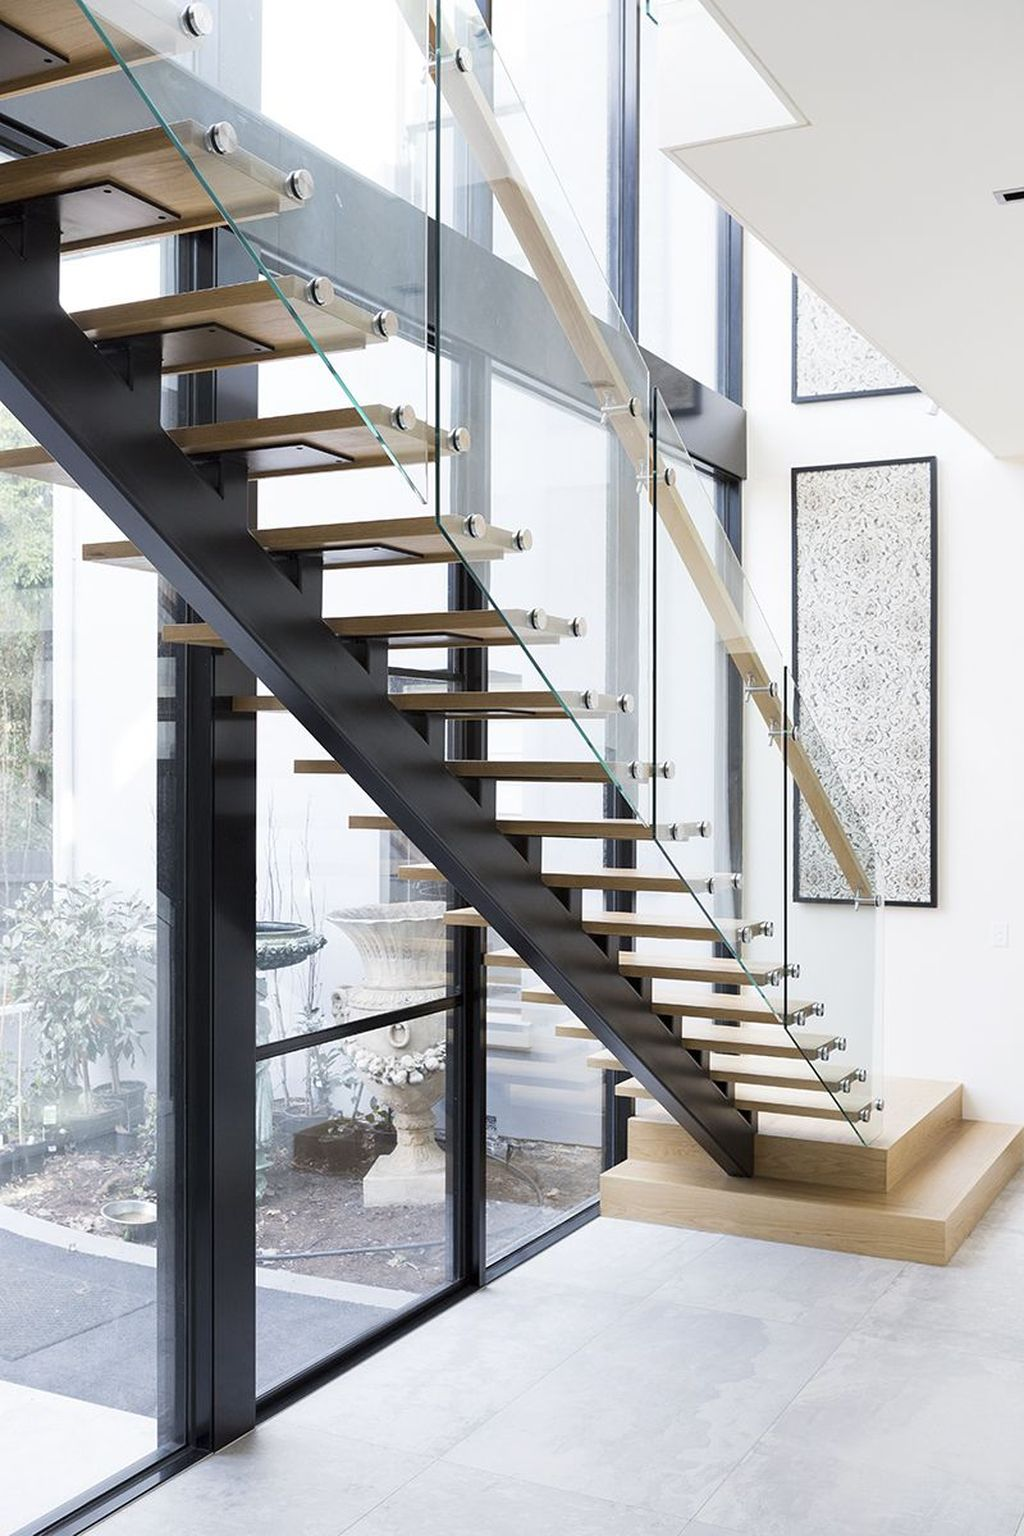 Awesome Modern Glass Railings Design Ideas For Stairs 22